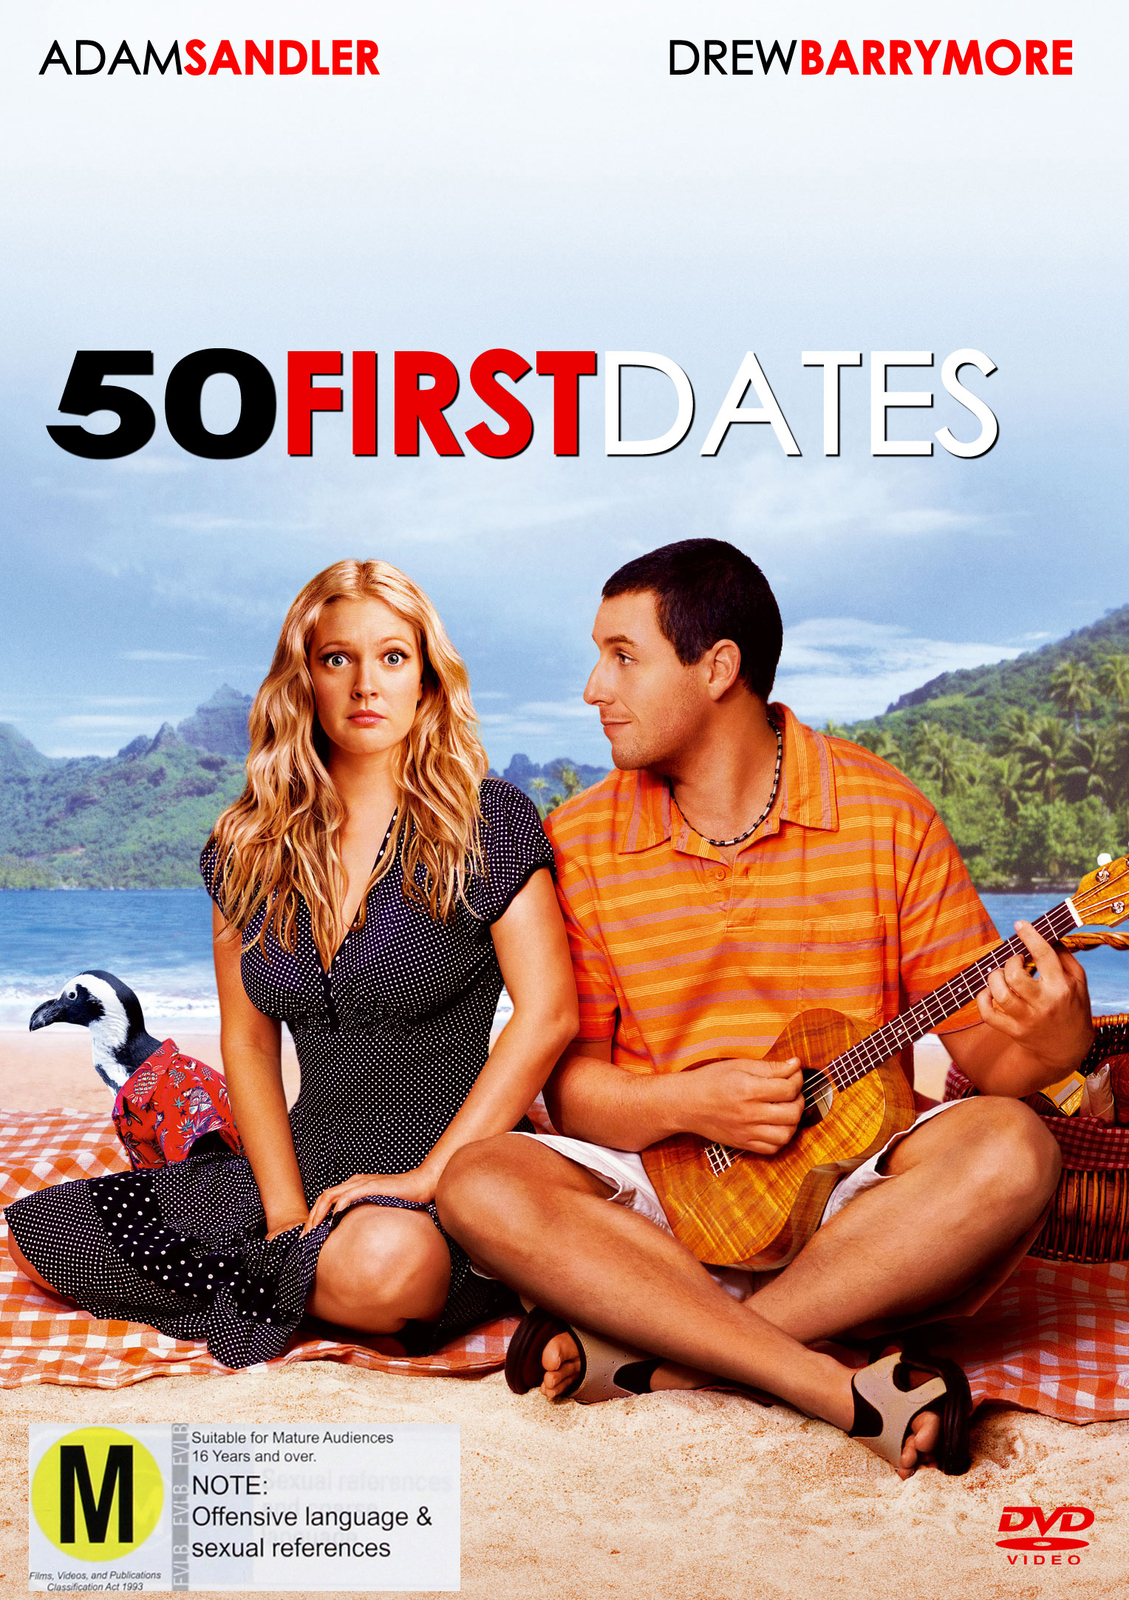 50 First Dates on DVD image